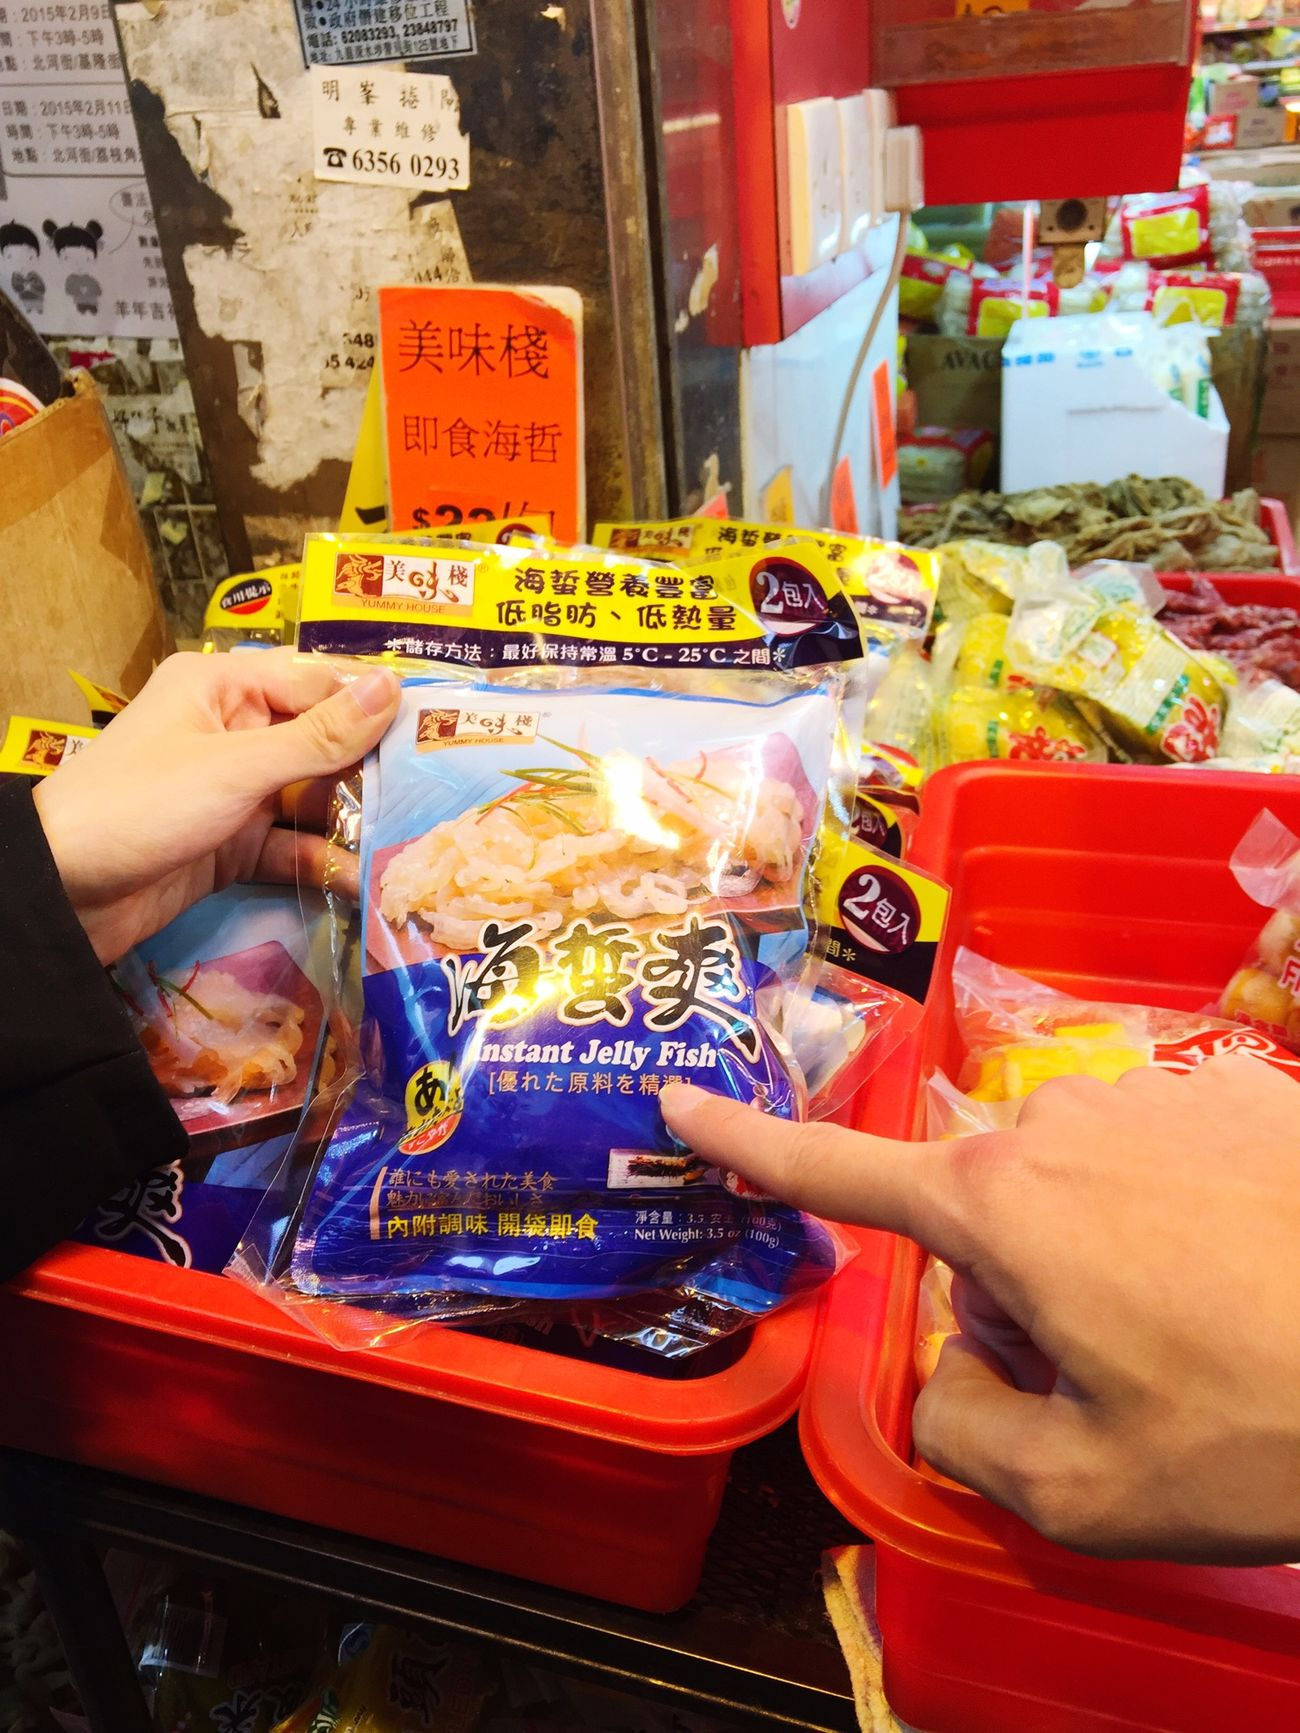 Hong Kong Sham Shui Po Snack Jellyfish Instant Jelly Fish